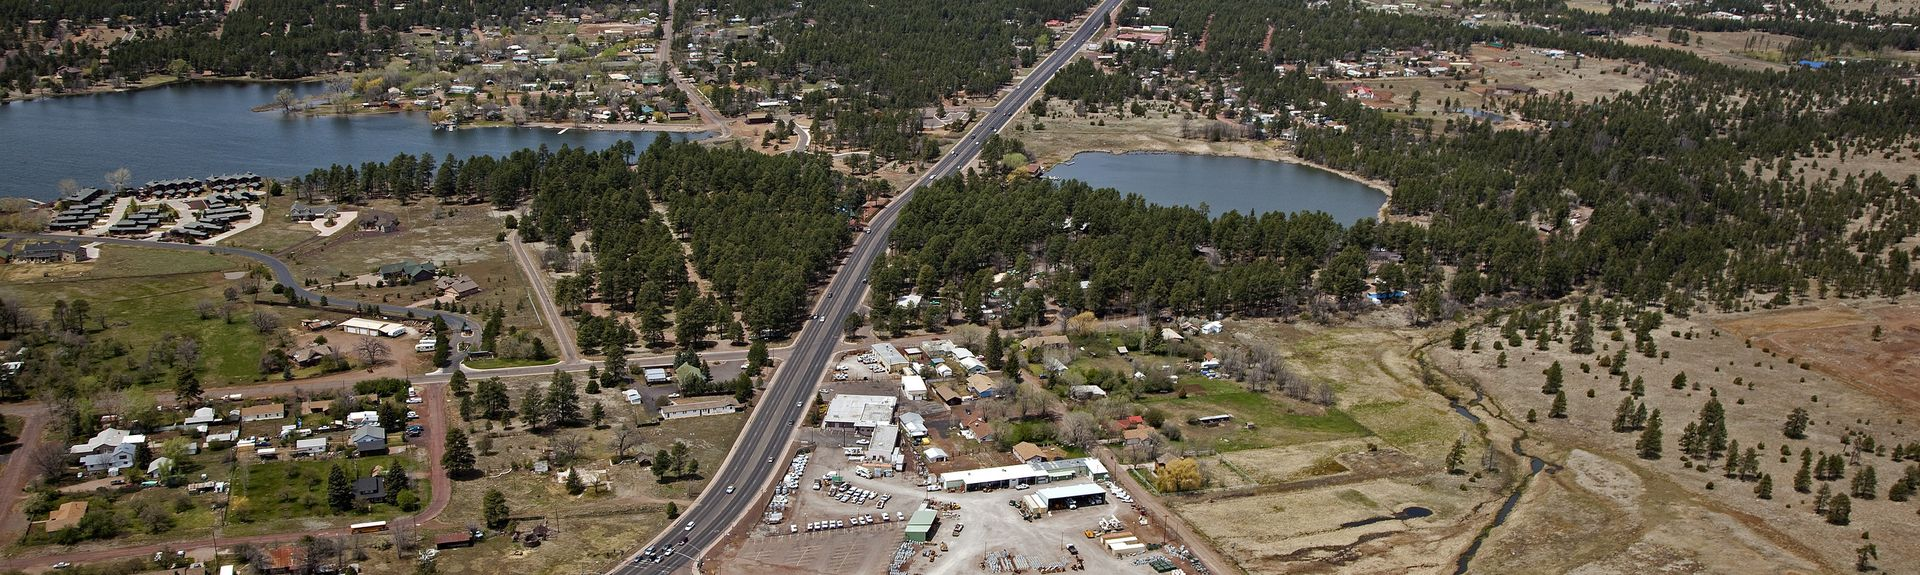 Lakeside, Pinetop-Lakeside, AZ, USA